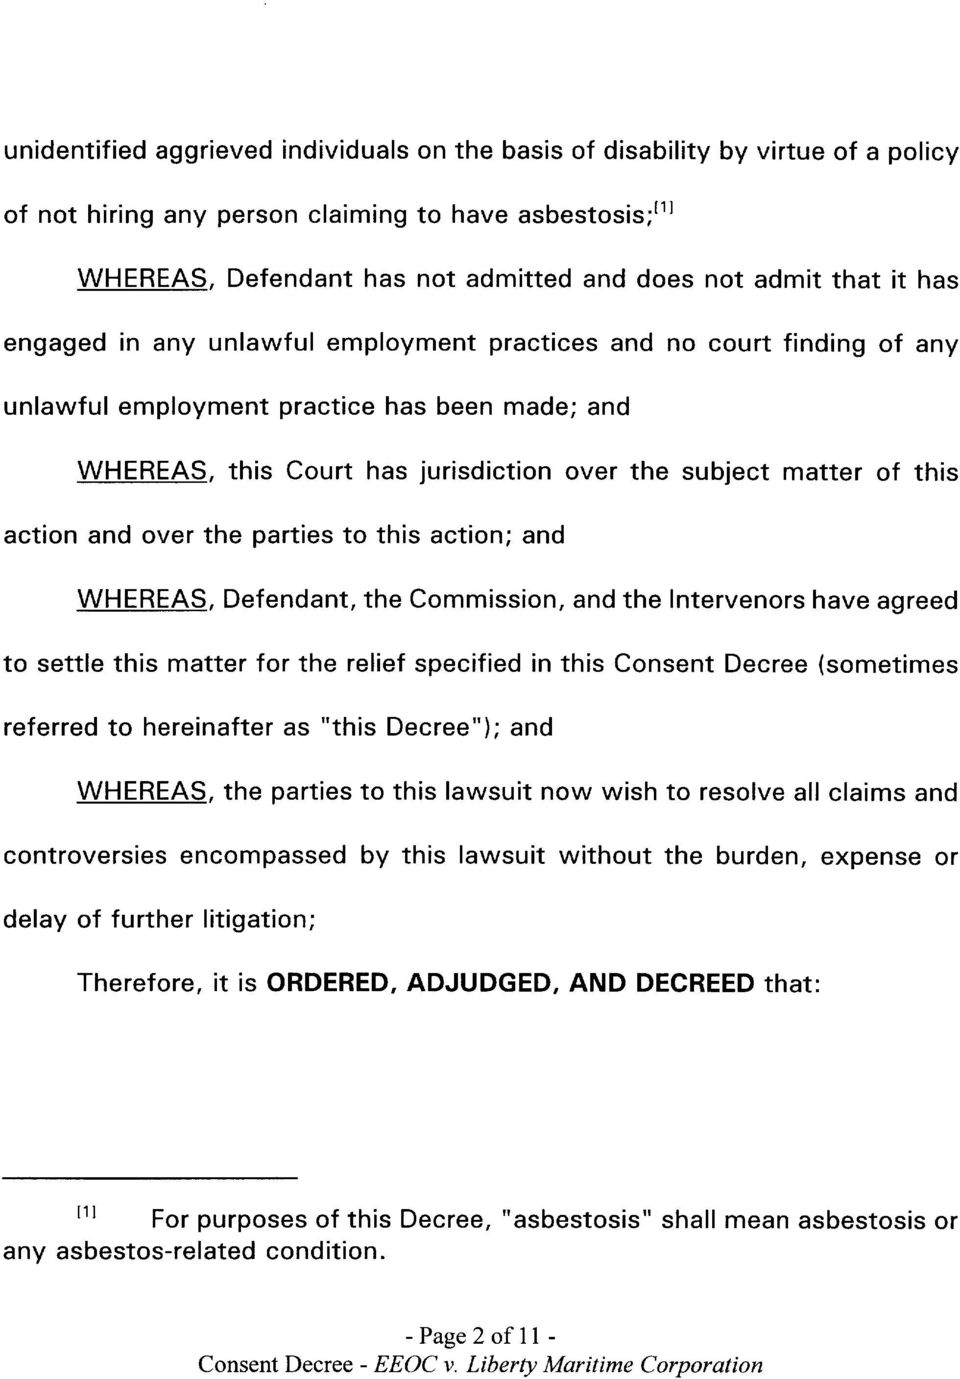 this action and over the parties to this action; and WHEREAS, Defendant, the Commission, and the Intervenors have agreed to settle this matter for the relief specified in this Consent Decree